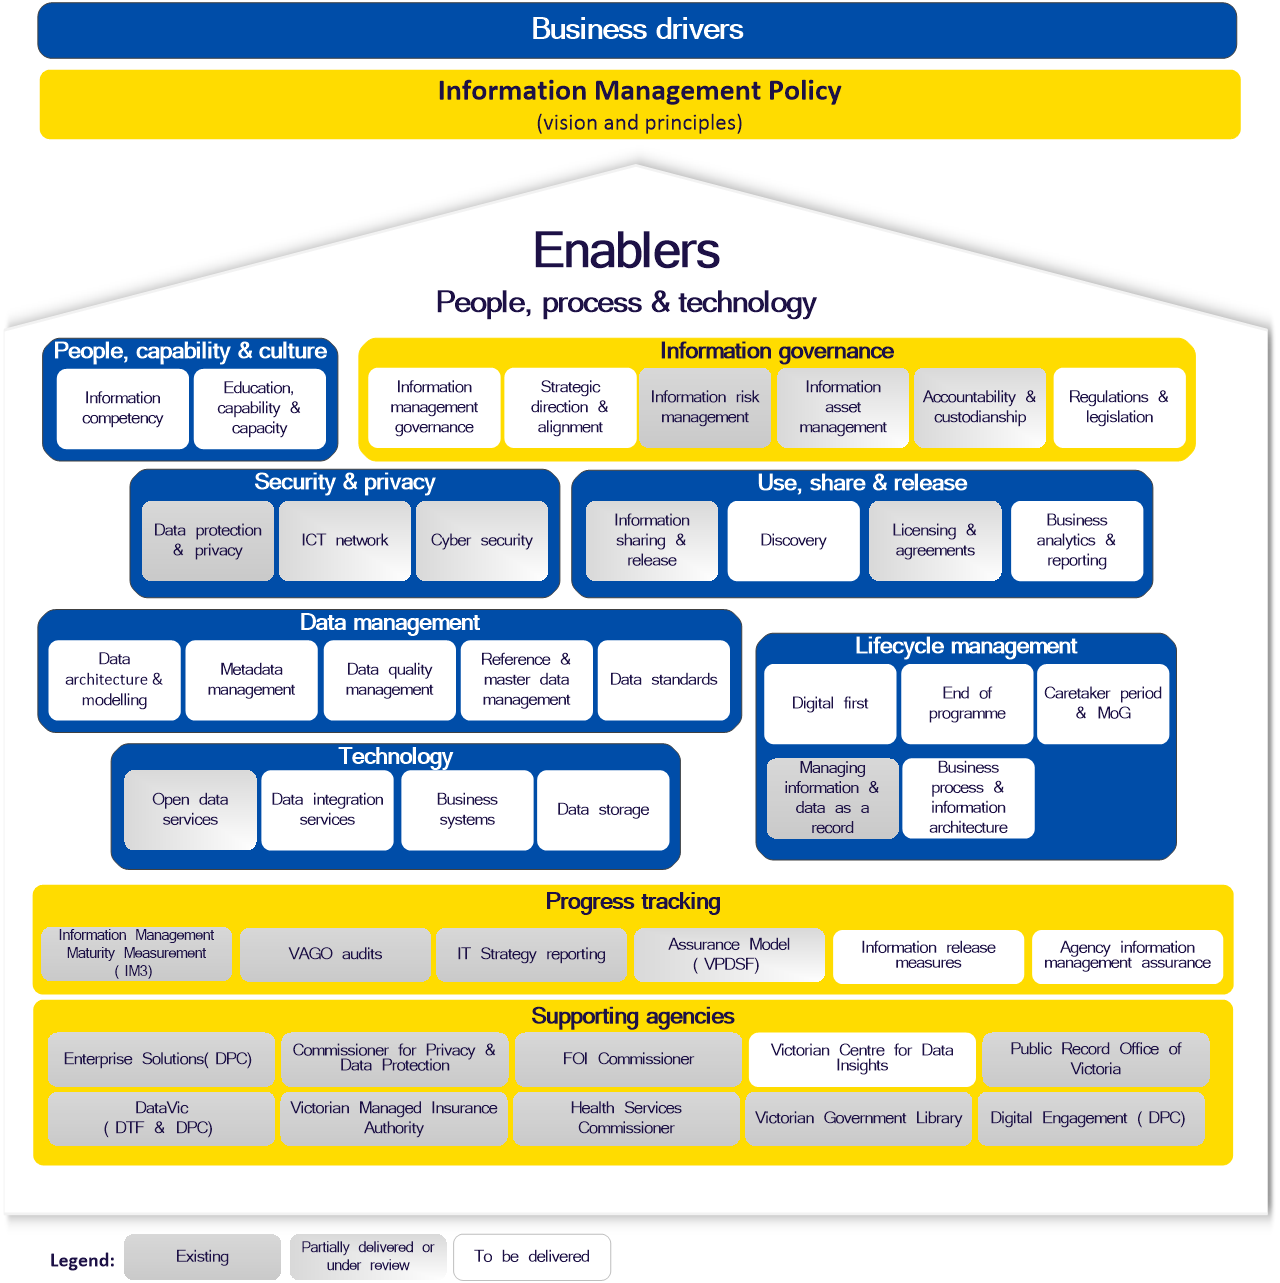 Chart indicating business drivers that contribute to information management policy, with groups of enablers. Also showing progress tracking (existing, partially or to be delivered) and supporting agencies